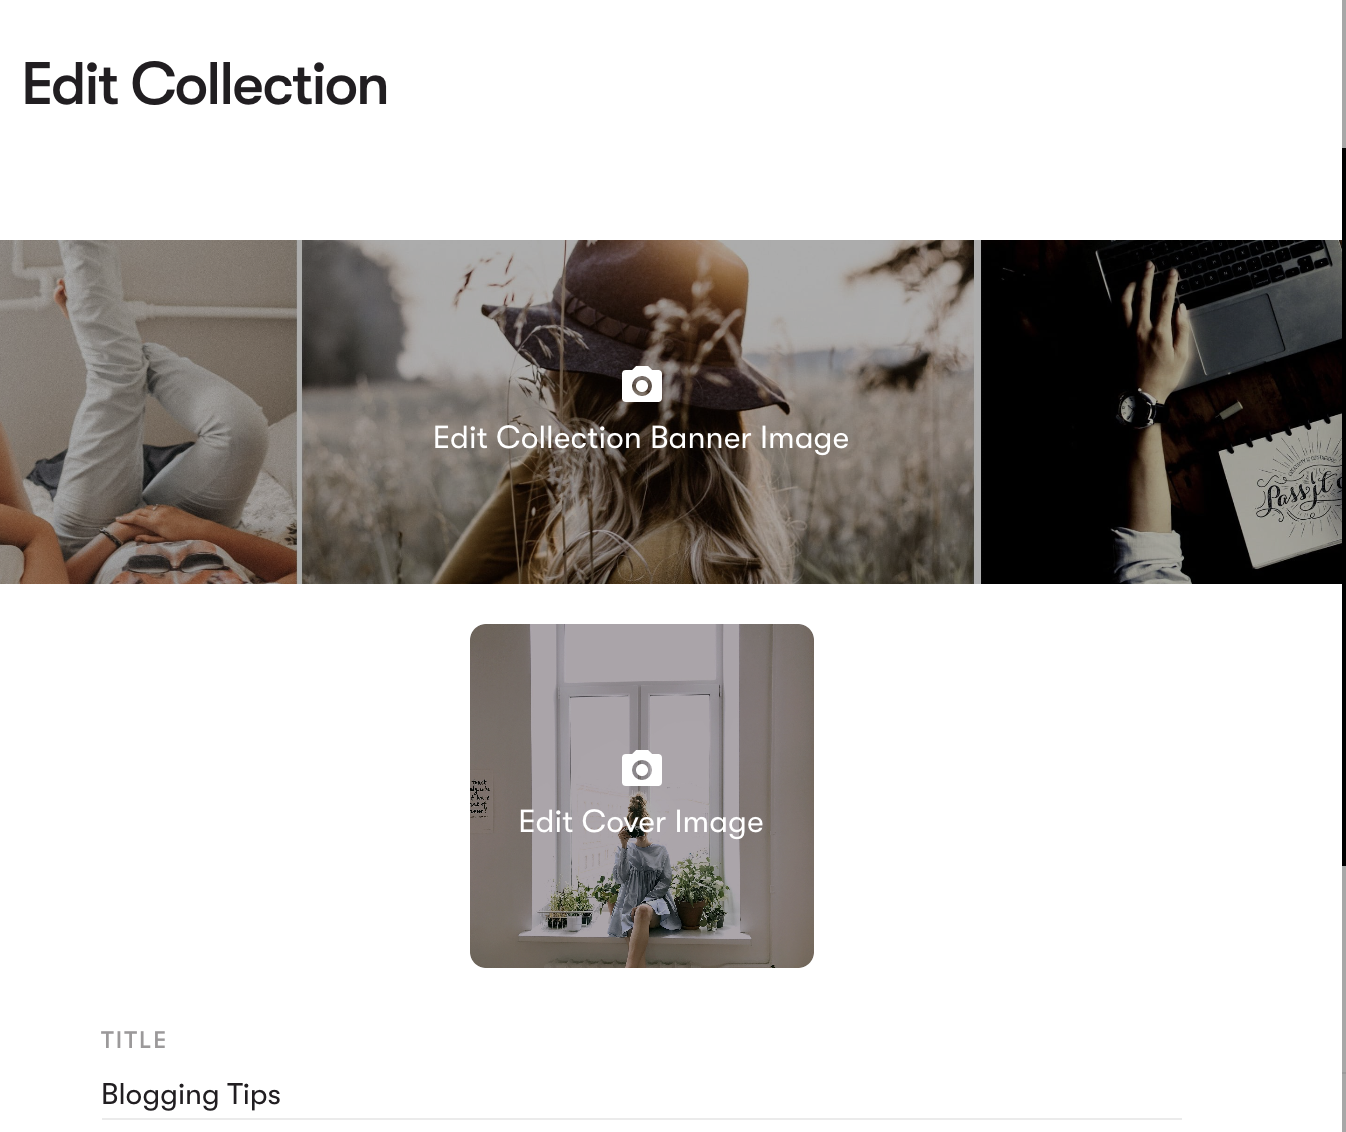 Create a banner for a Mix collection